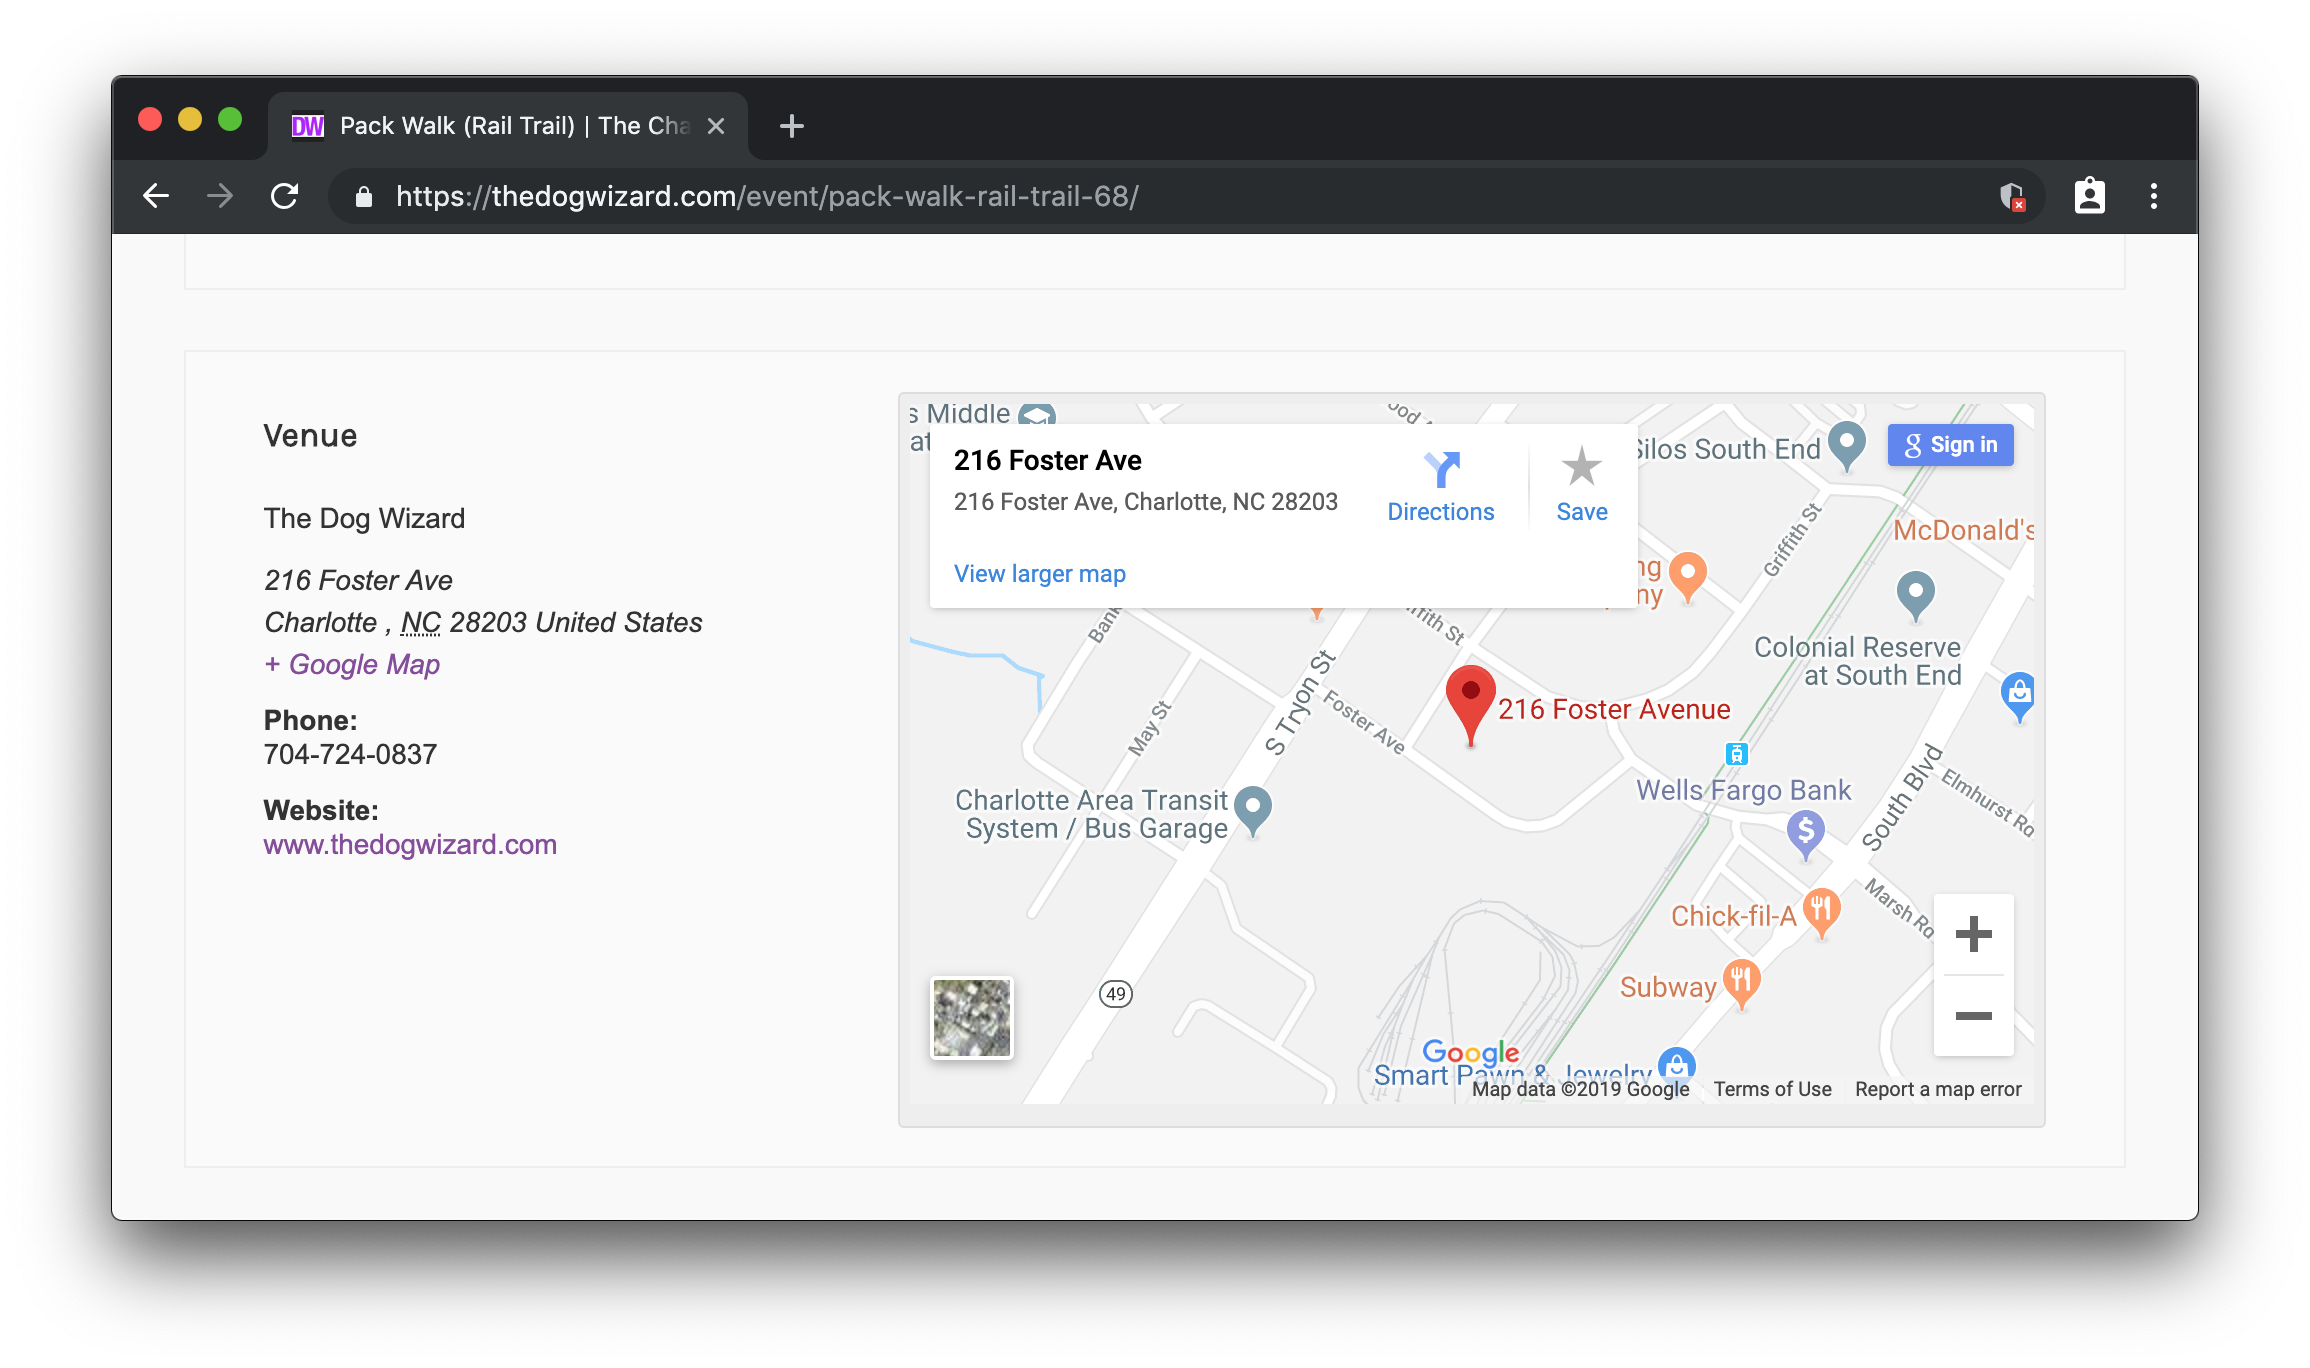 A screenshot of a Google Map embedded in the event on The Dog Wizard event calendar.